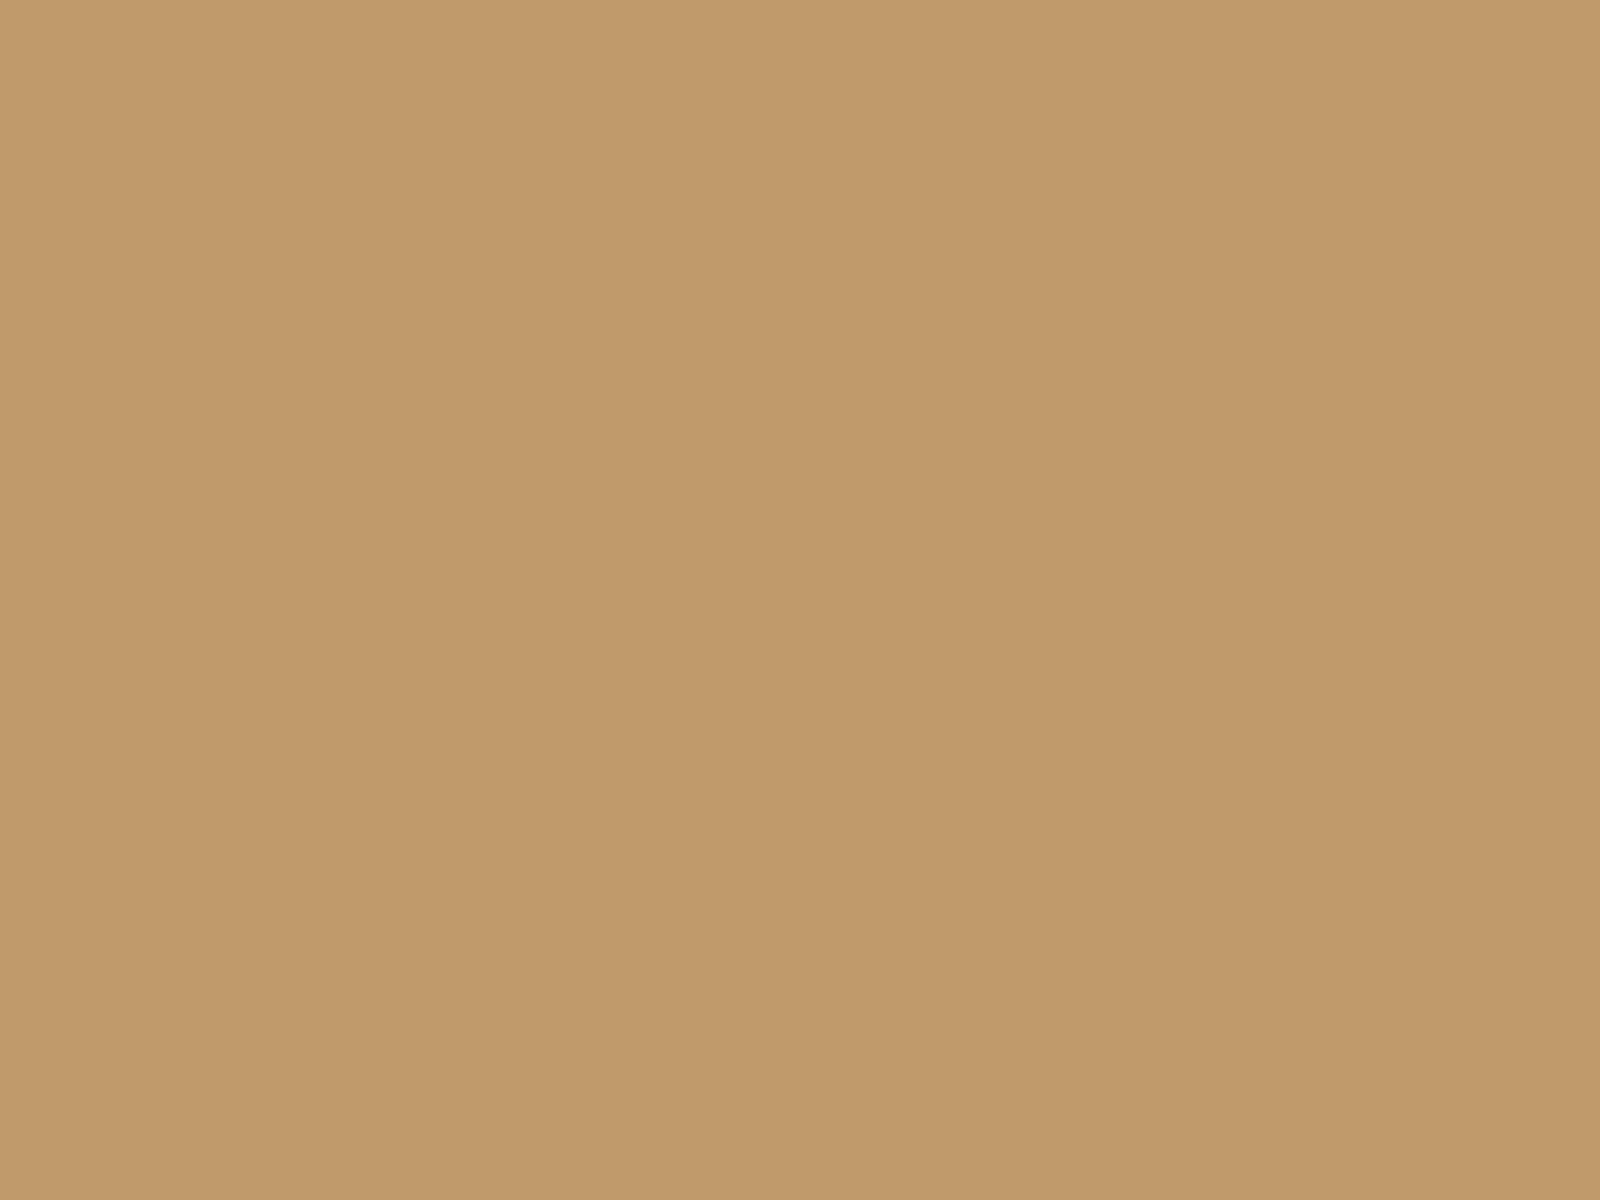 1600x1200 Wood Brown Solid Color Background